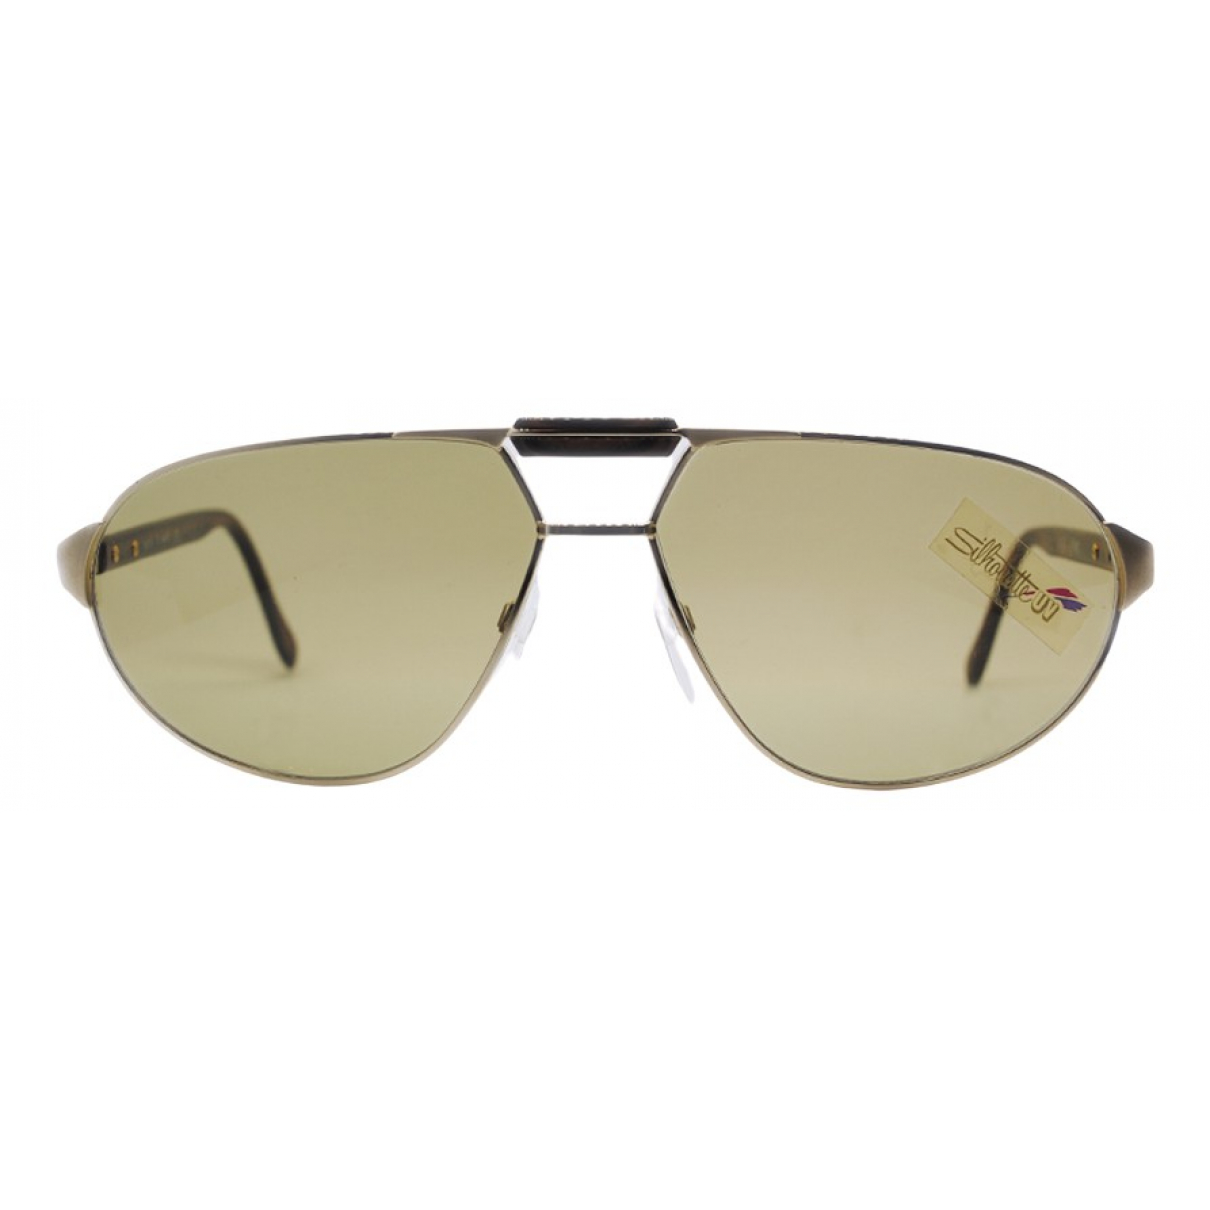 Silhouette N Gold Metal Sunglasses for Men N